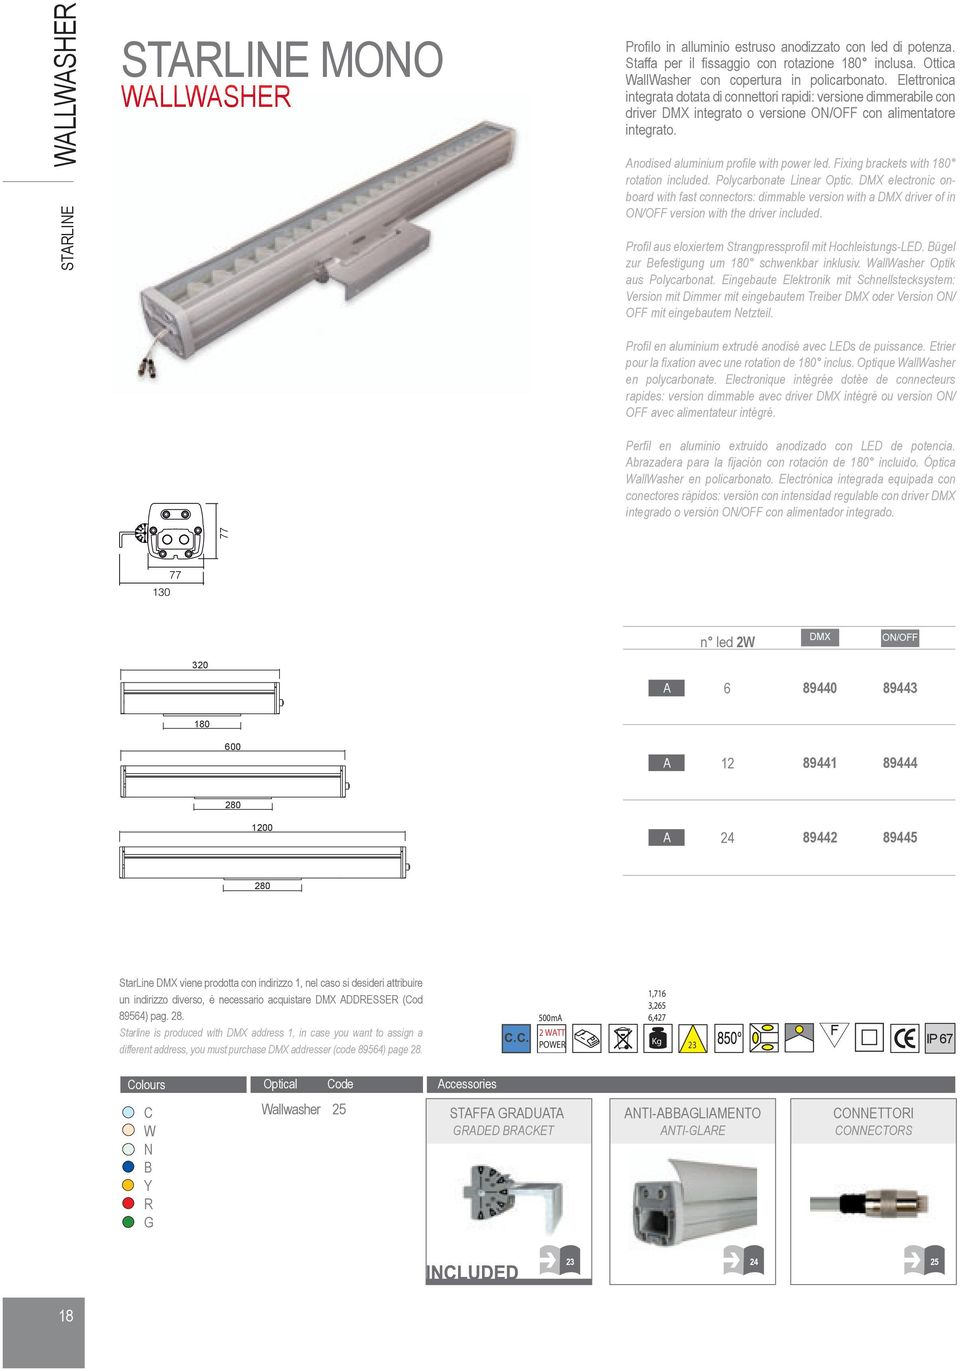 Fixing brackets with 180 rotation included. Polycarbonate Linear Optic. DMX electronic onboard with fast connectors: dimmable version with a DMX driver of in ON/OFF version with the driver included.